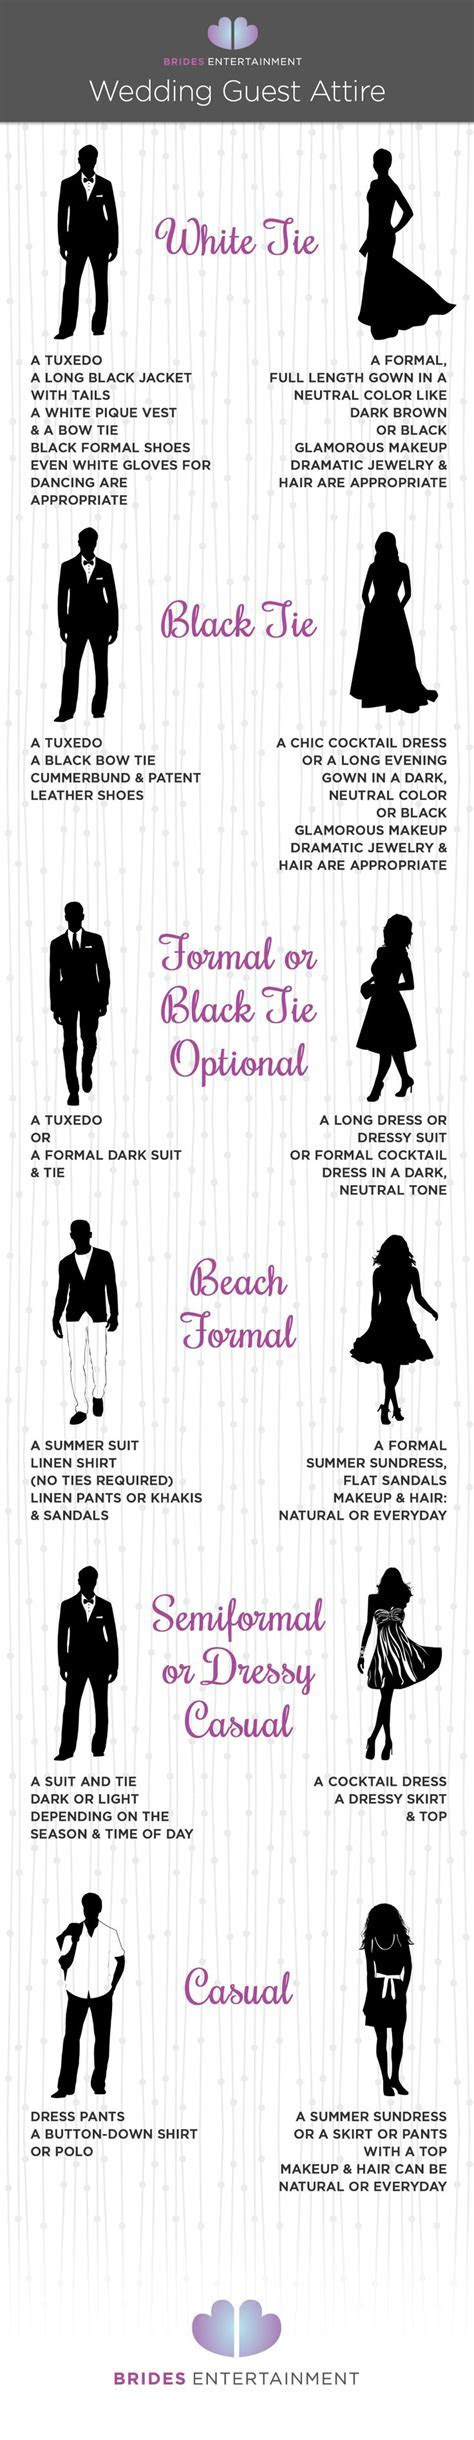 41 Formal Black Tie Optional, Wedding Guest Style Guide